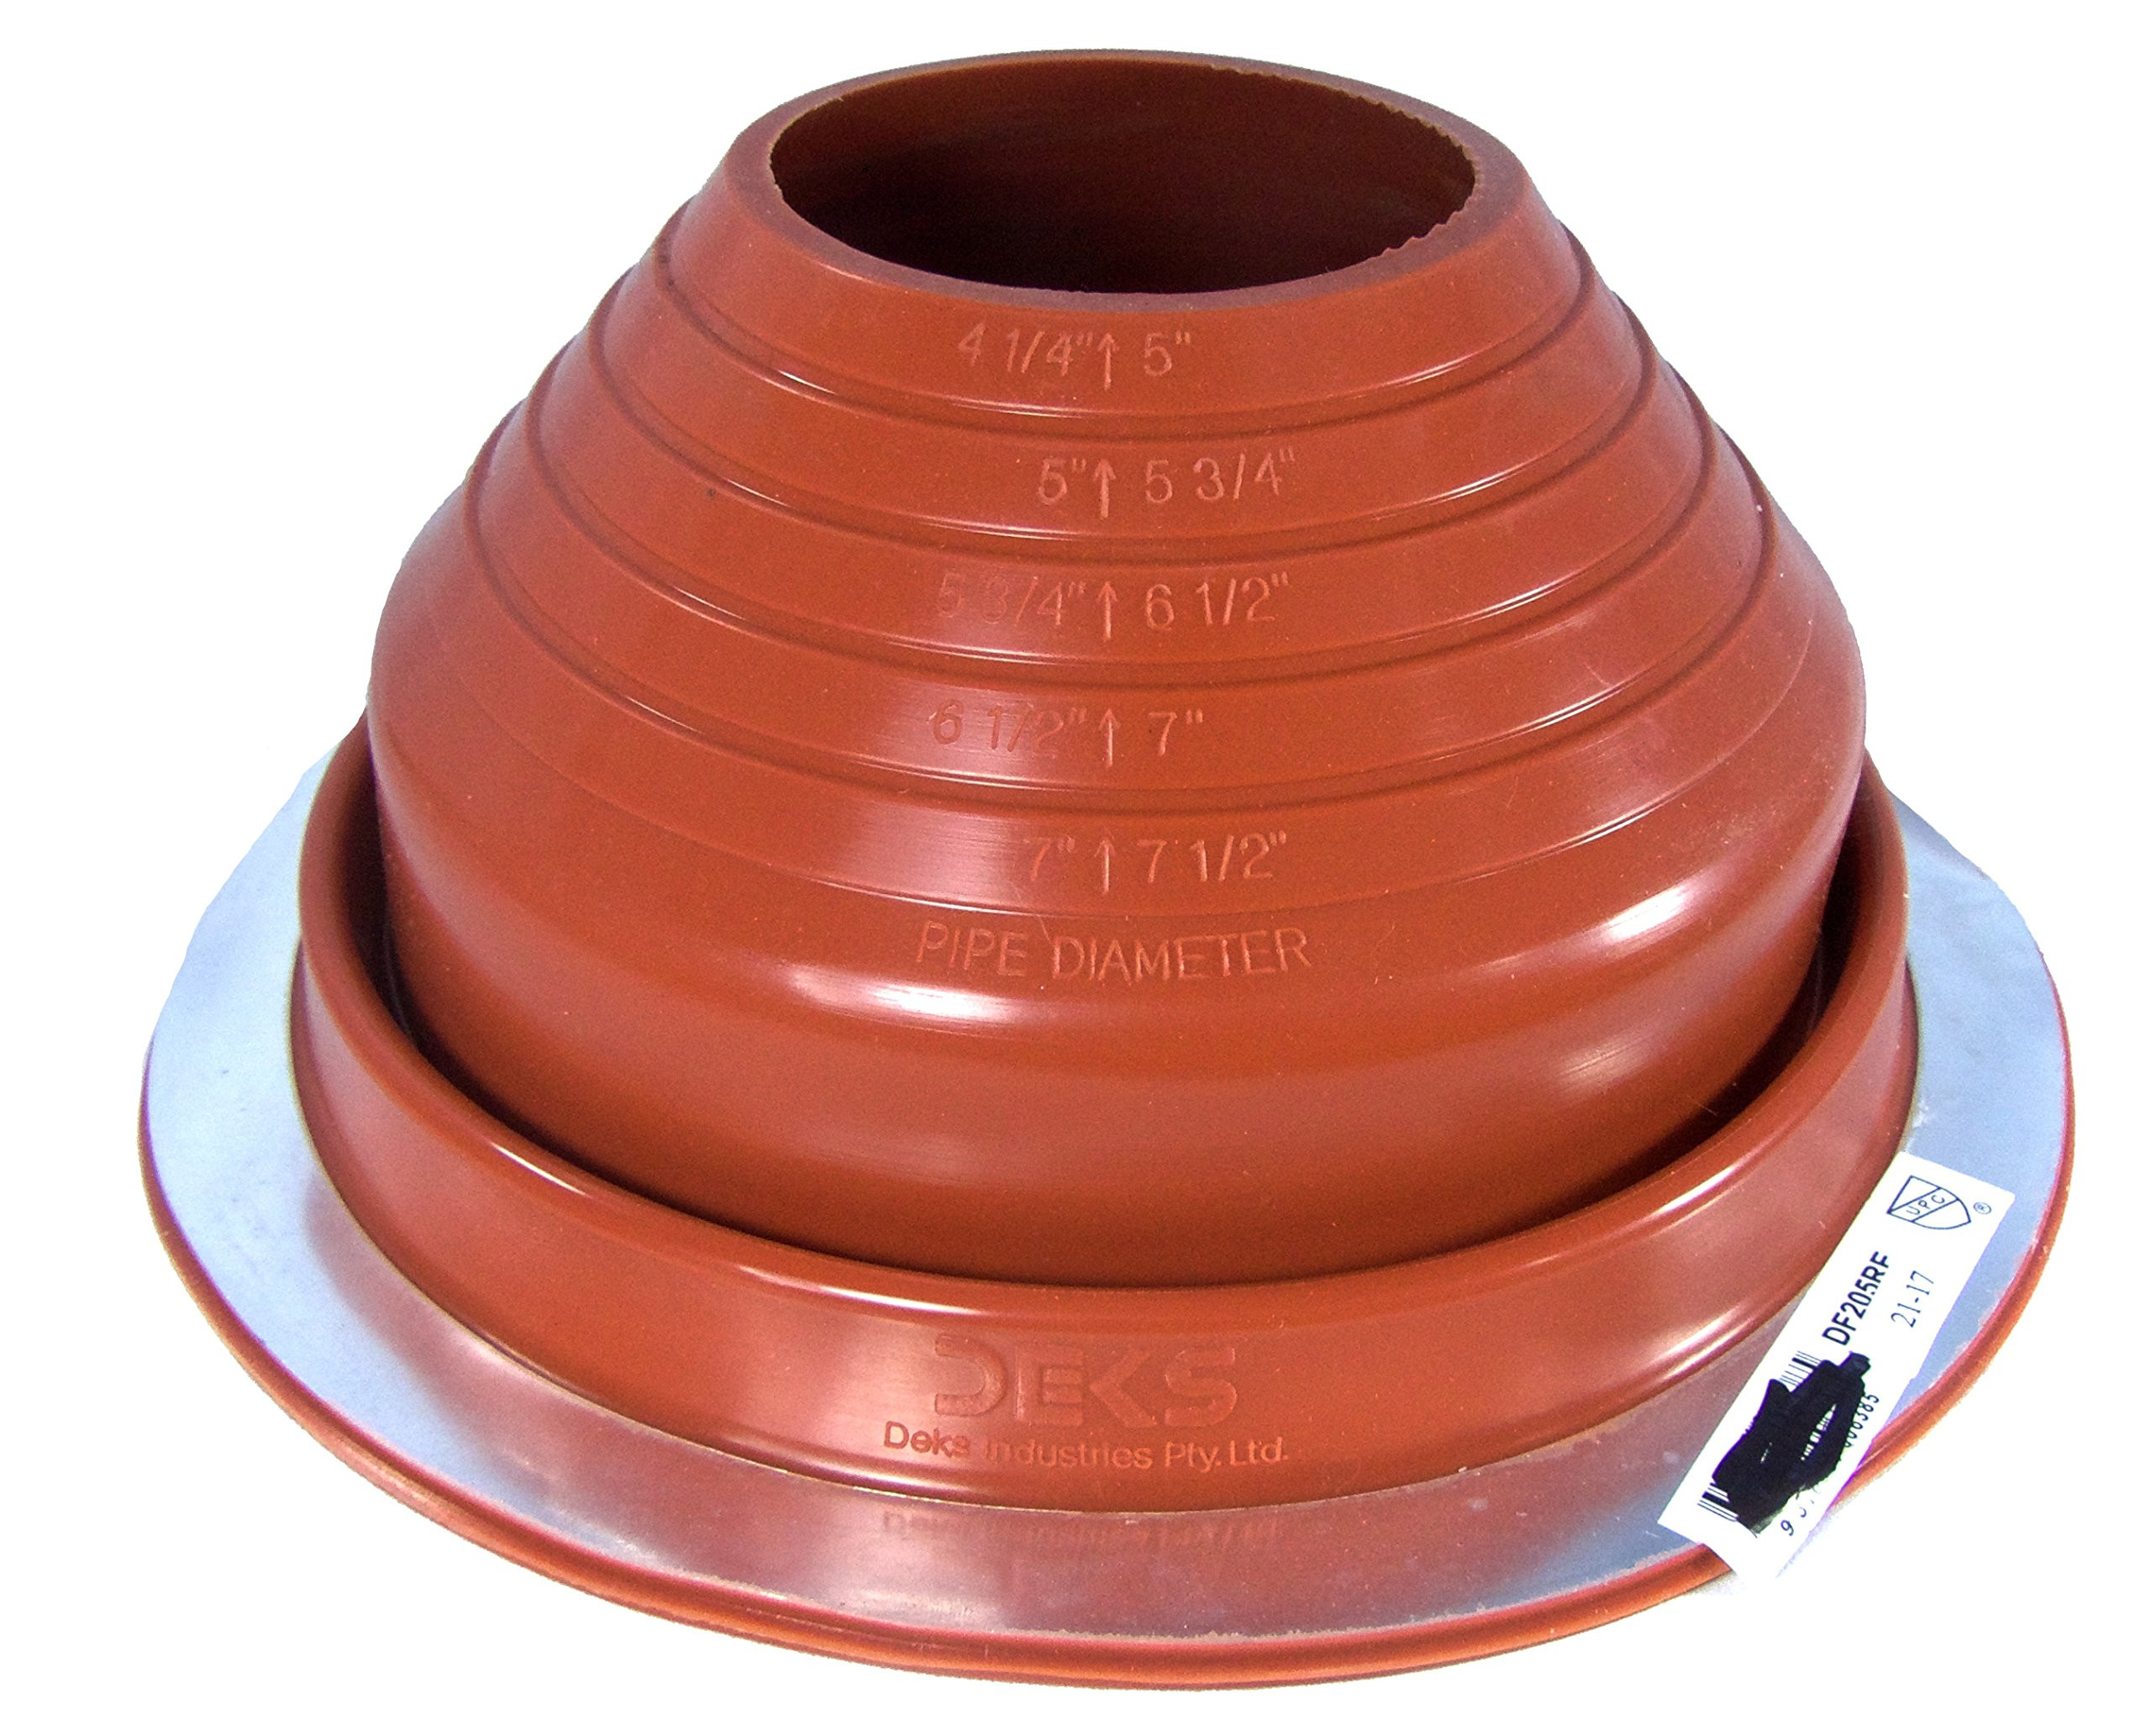 Tall Floor Vases Amazon Of Best Rated In Roof Flashings Helpful Customer Reviews Amazon Com for Dektite 5 Red Silicone Metal Roof Pipe Flashing Round Base Pipe Od 4 1 4 7 1 2